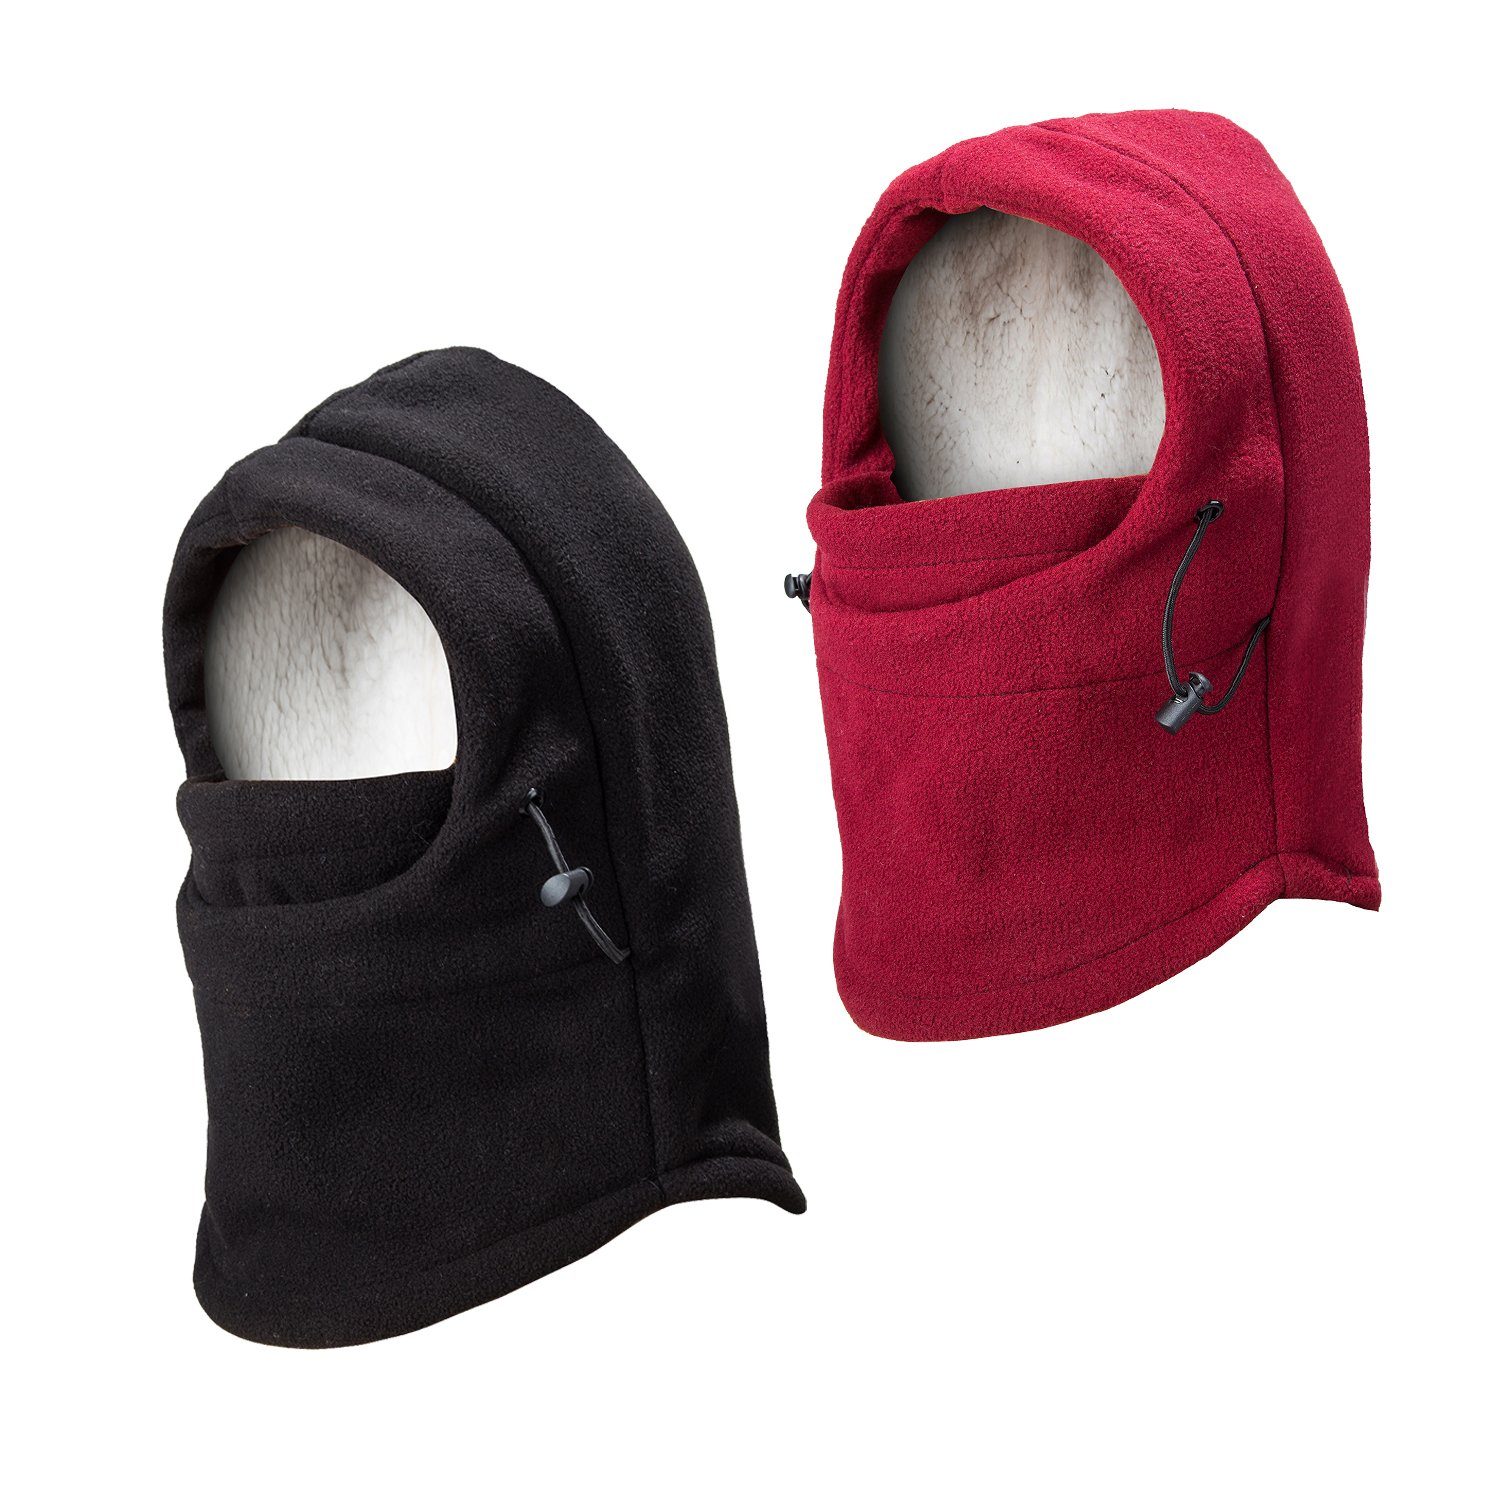 REDESS Kids Winter Windproof Hat, Unisex Children Heavyweight Balaclava, Ski Mask With Thick Warm Fleece Face Cover For Kids Pack Of 2 Black Wine Red by